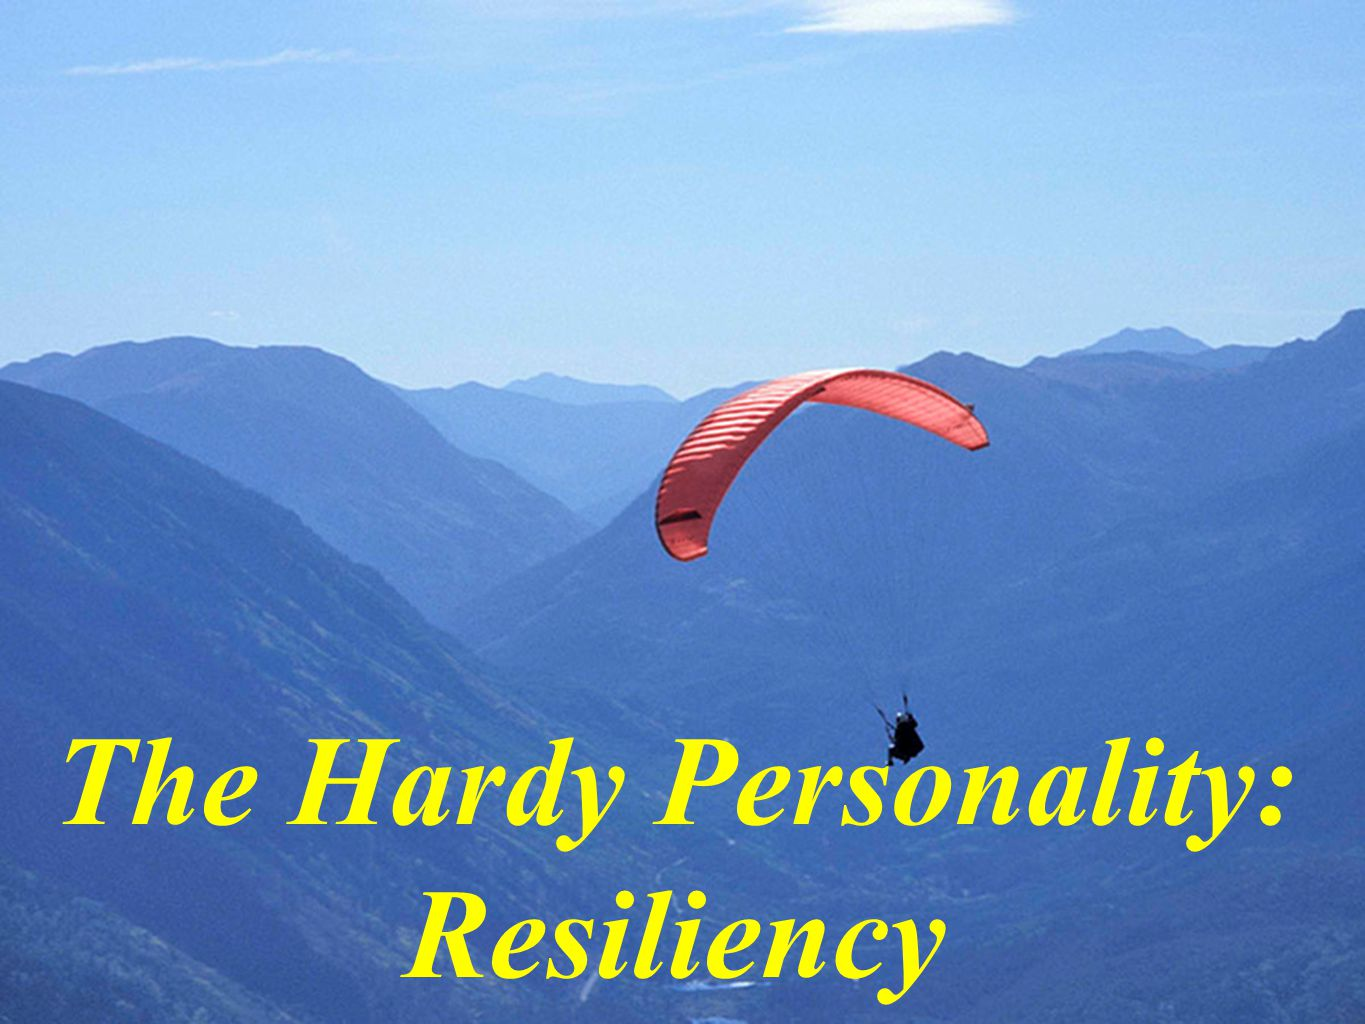 The Hardy Personality: Resiliency